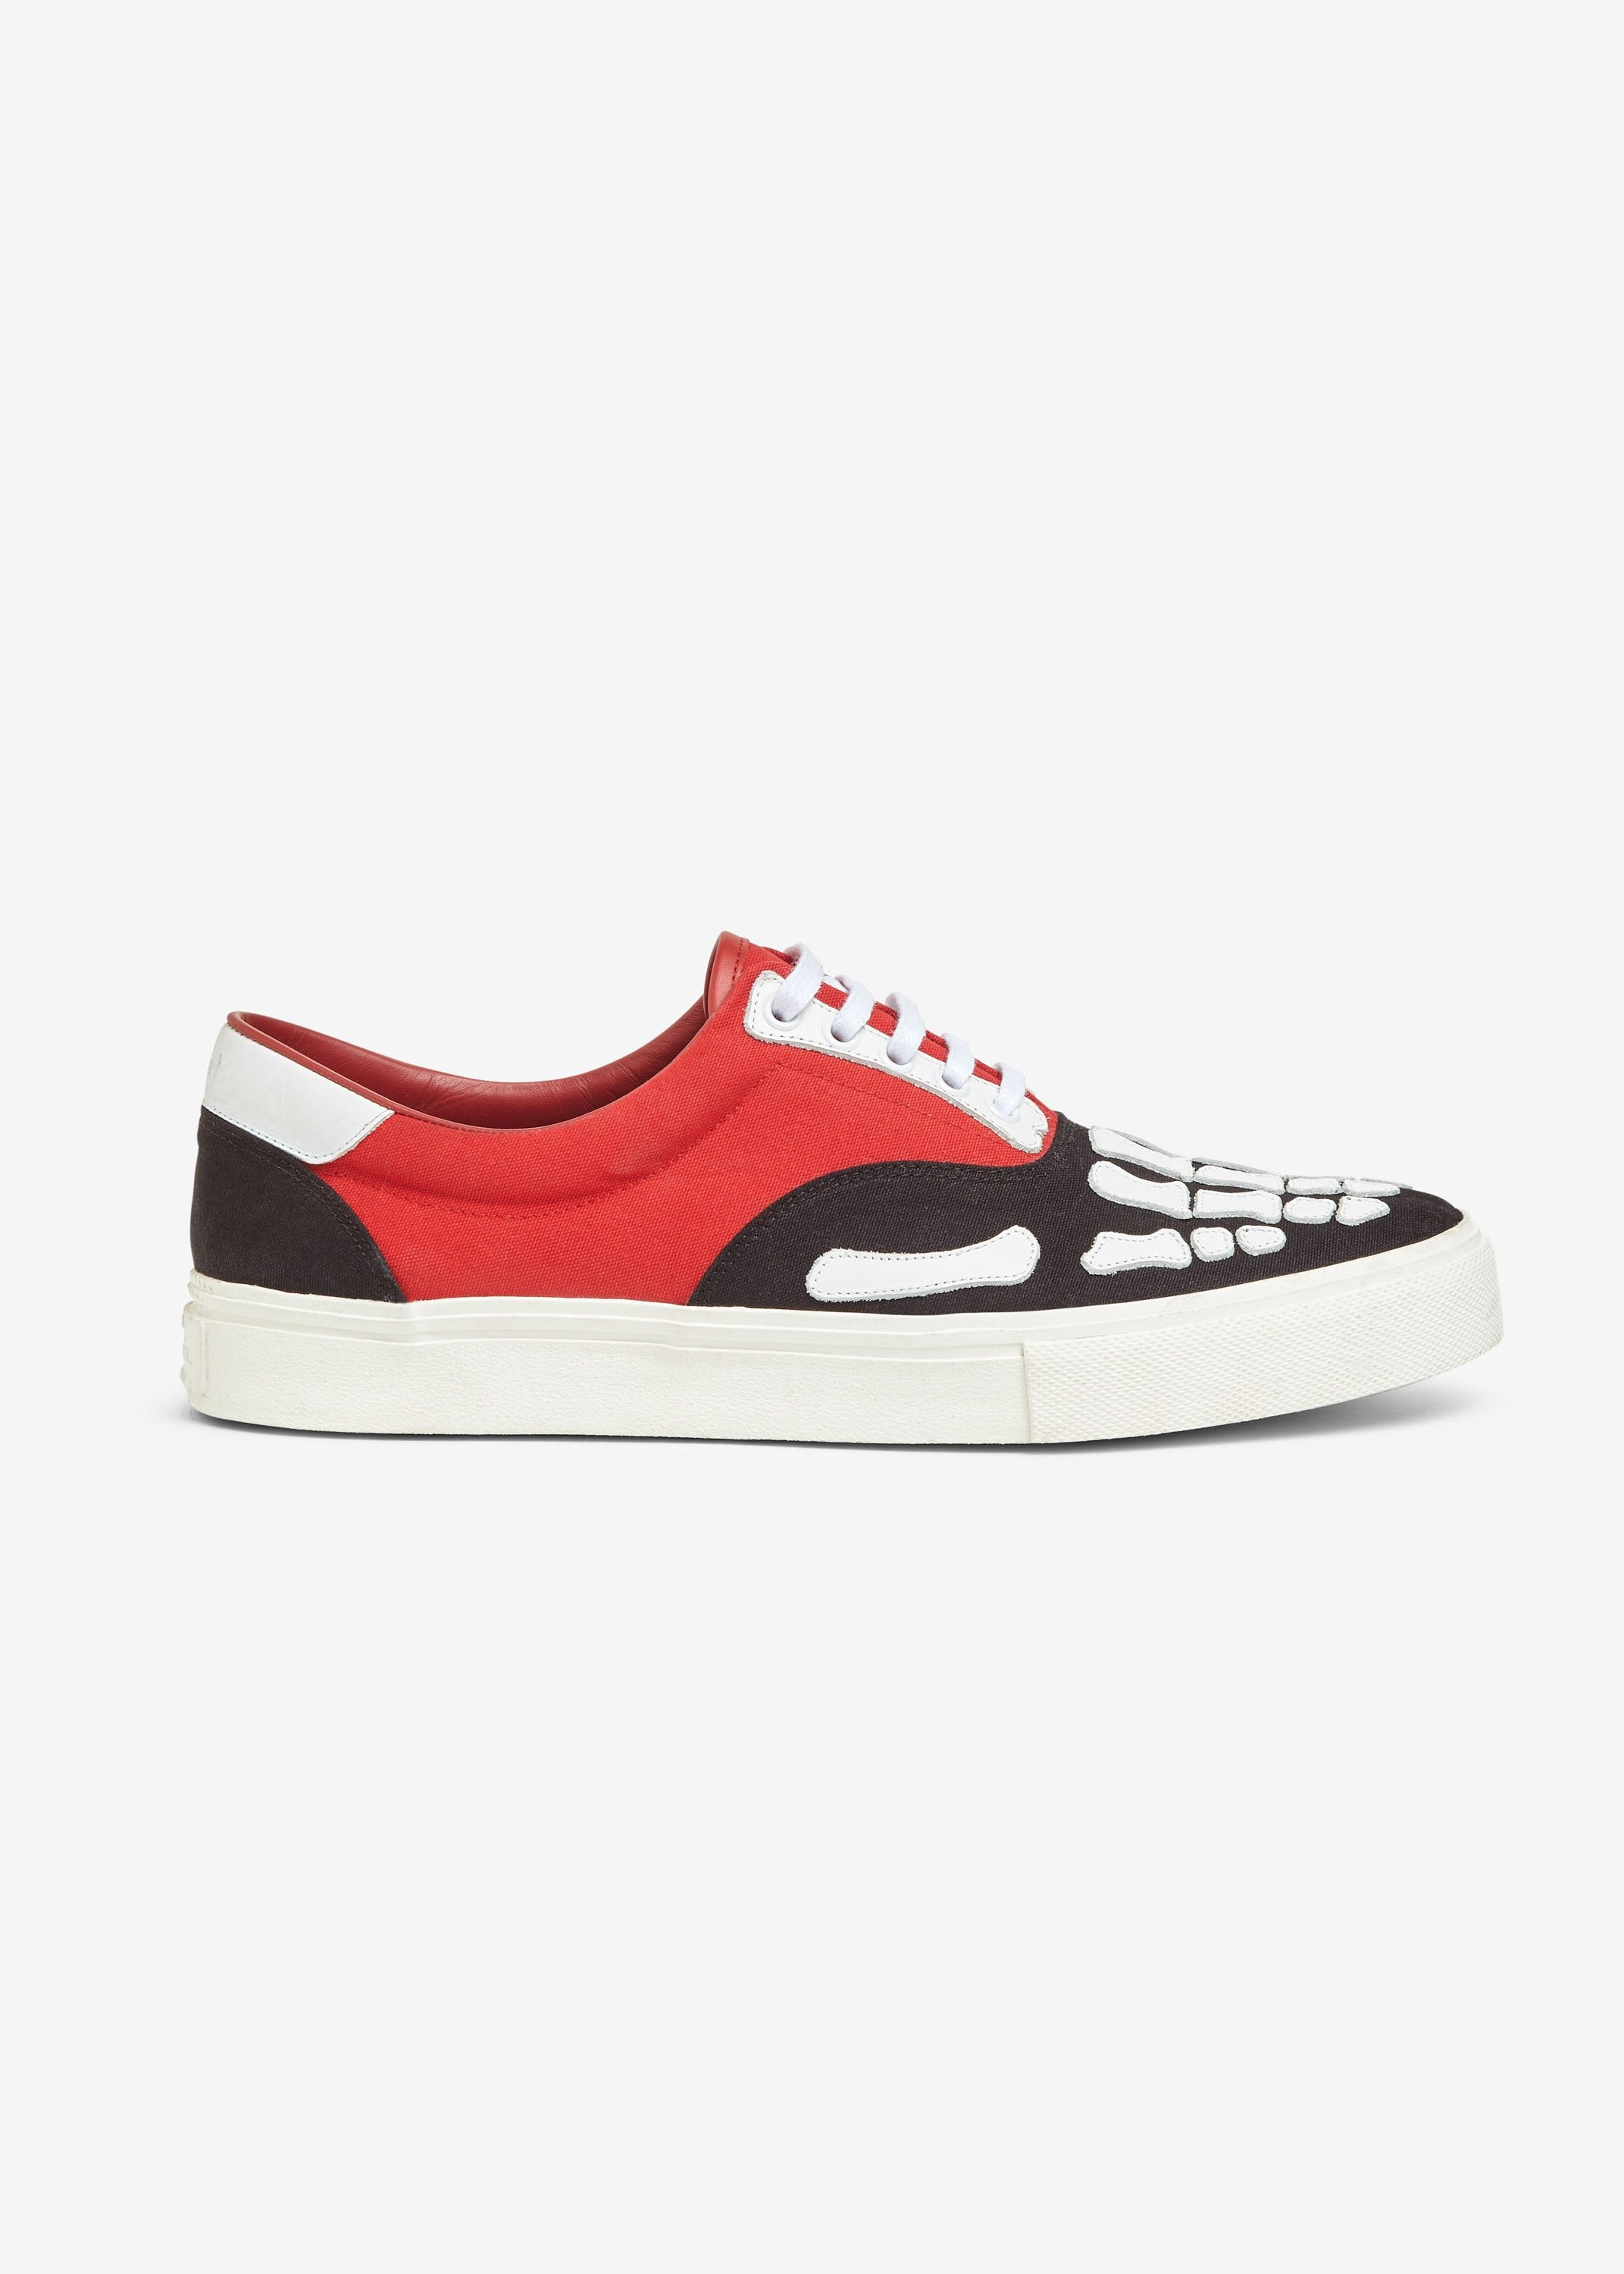 skel-toe-lace-up-black-red-white-image-1